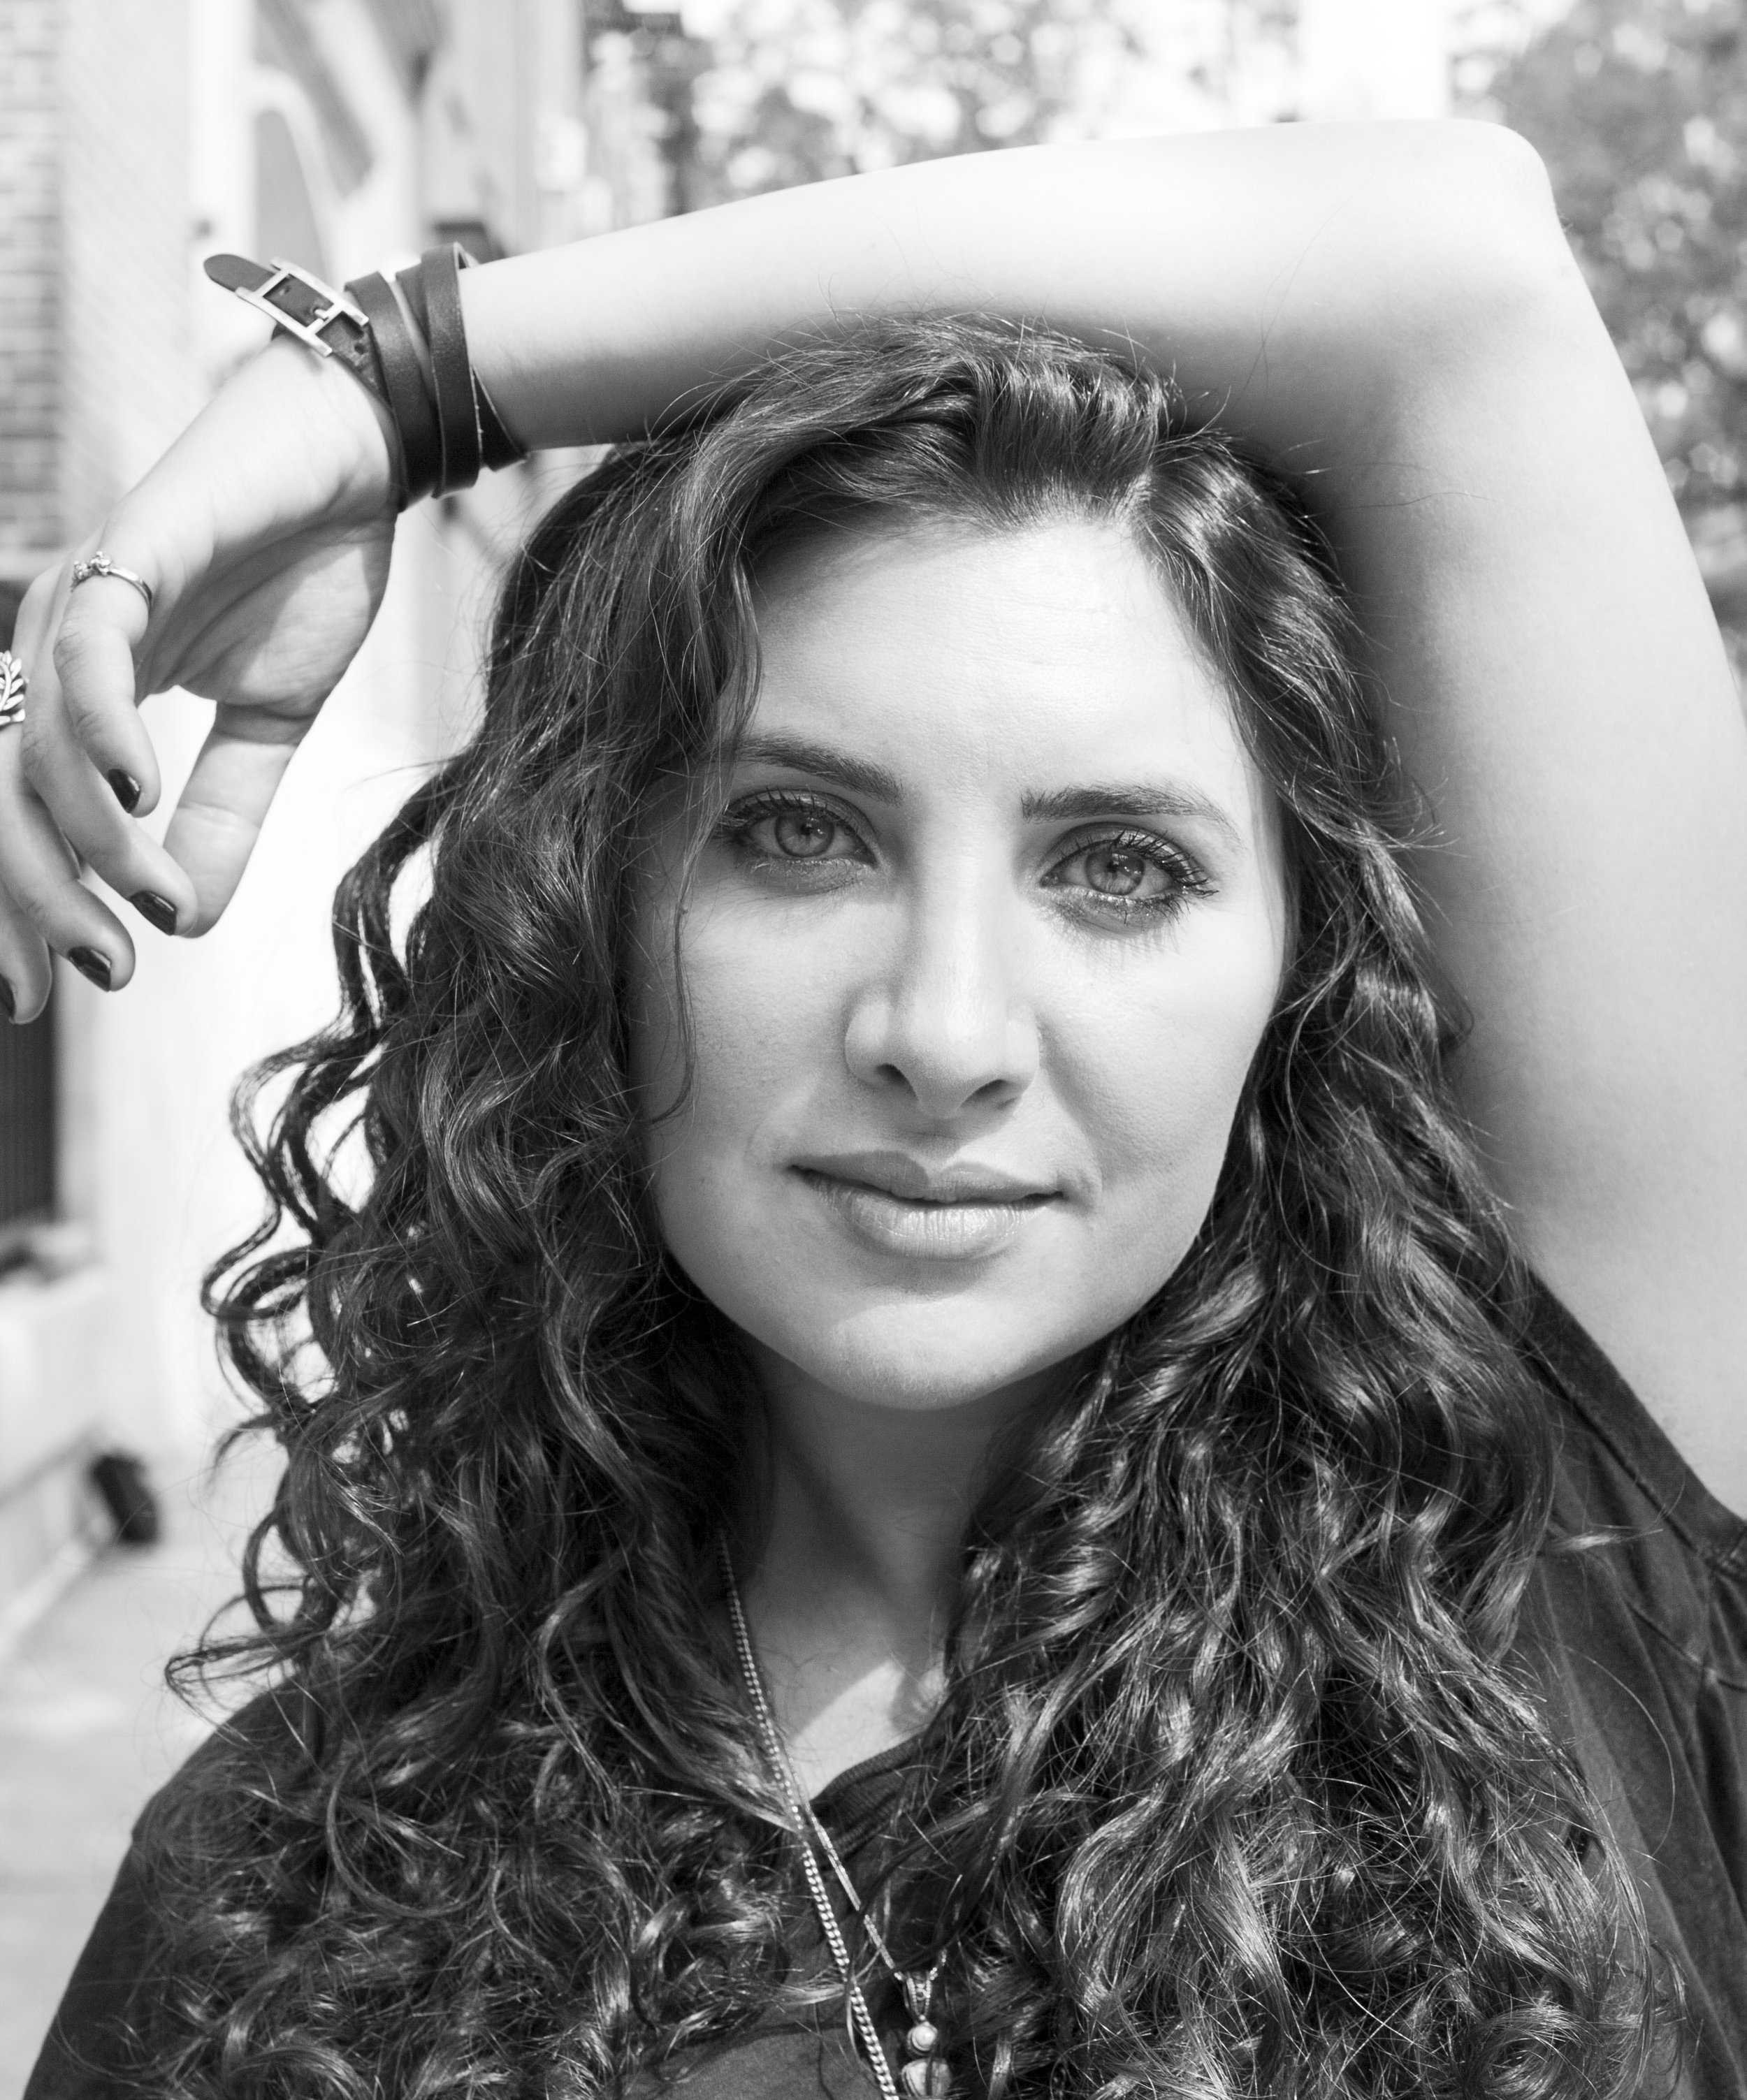 Meet Emily GoGLia - Emily Goglia is talented beyond words. Literally. Not only is she the writer behind her own solo cabaret show,